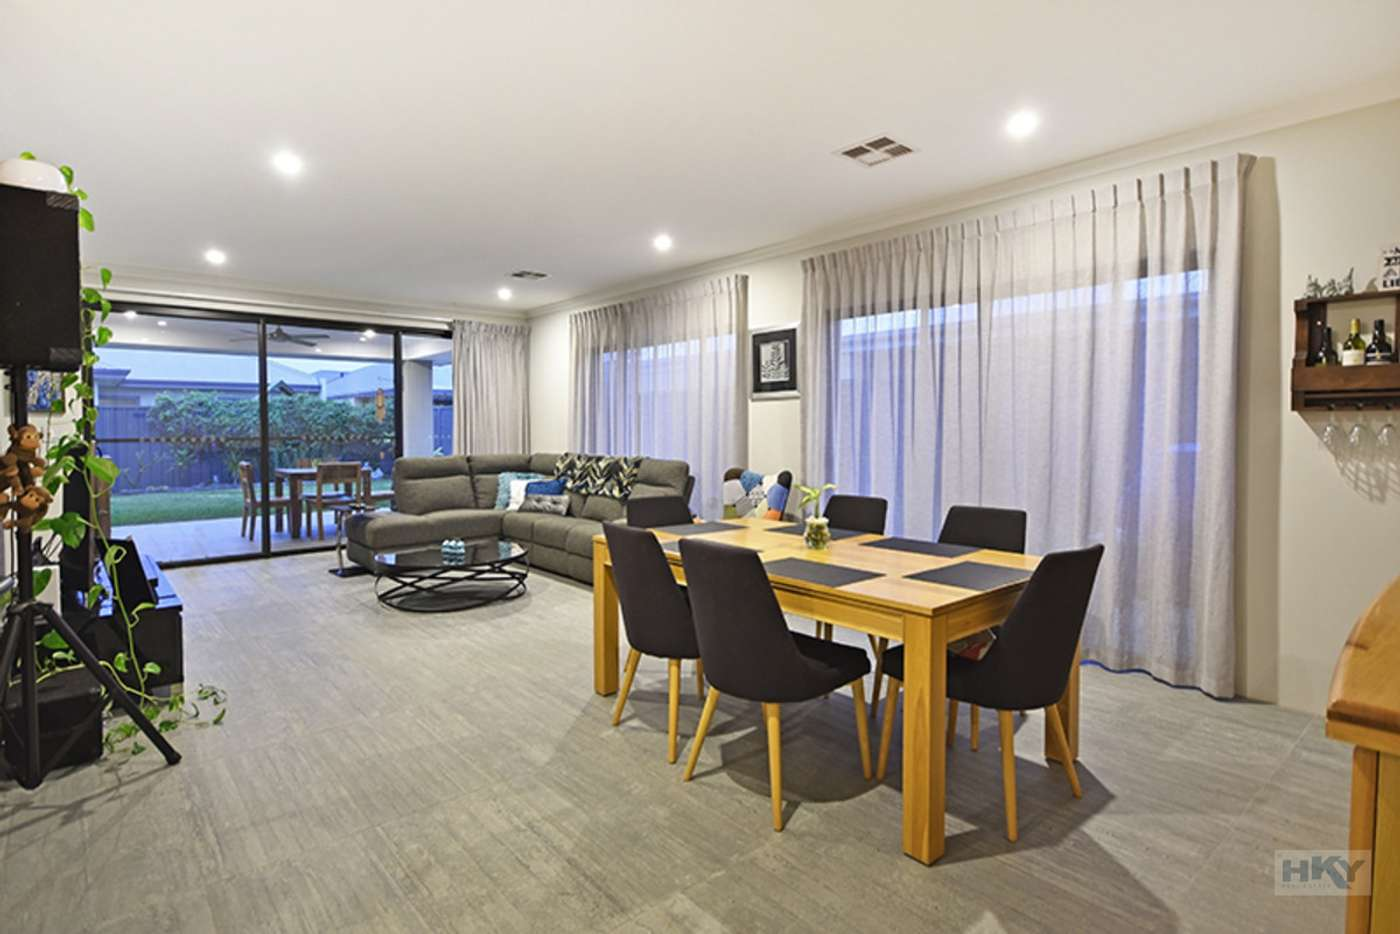 Sixth view of Homely house listing, 5 Kerruish Road, Caversham WA 6055